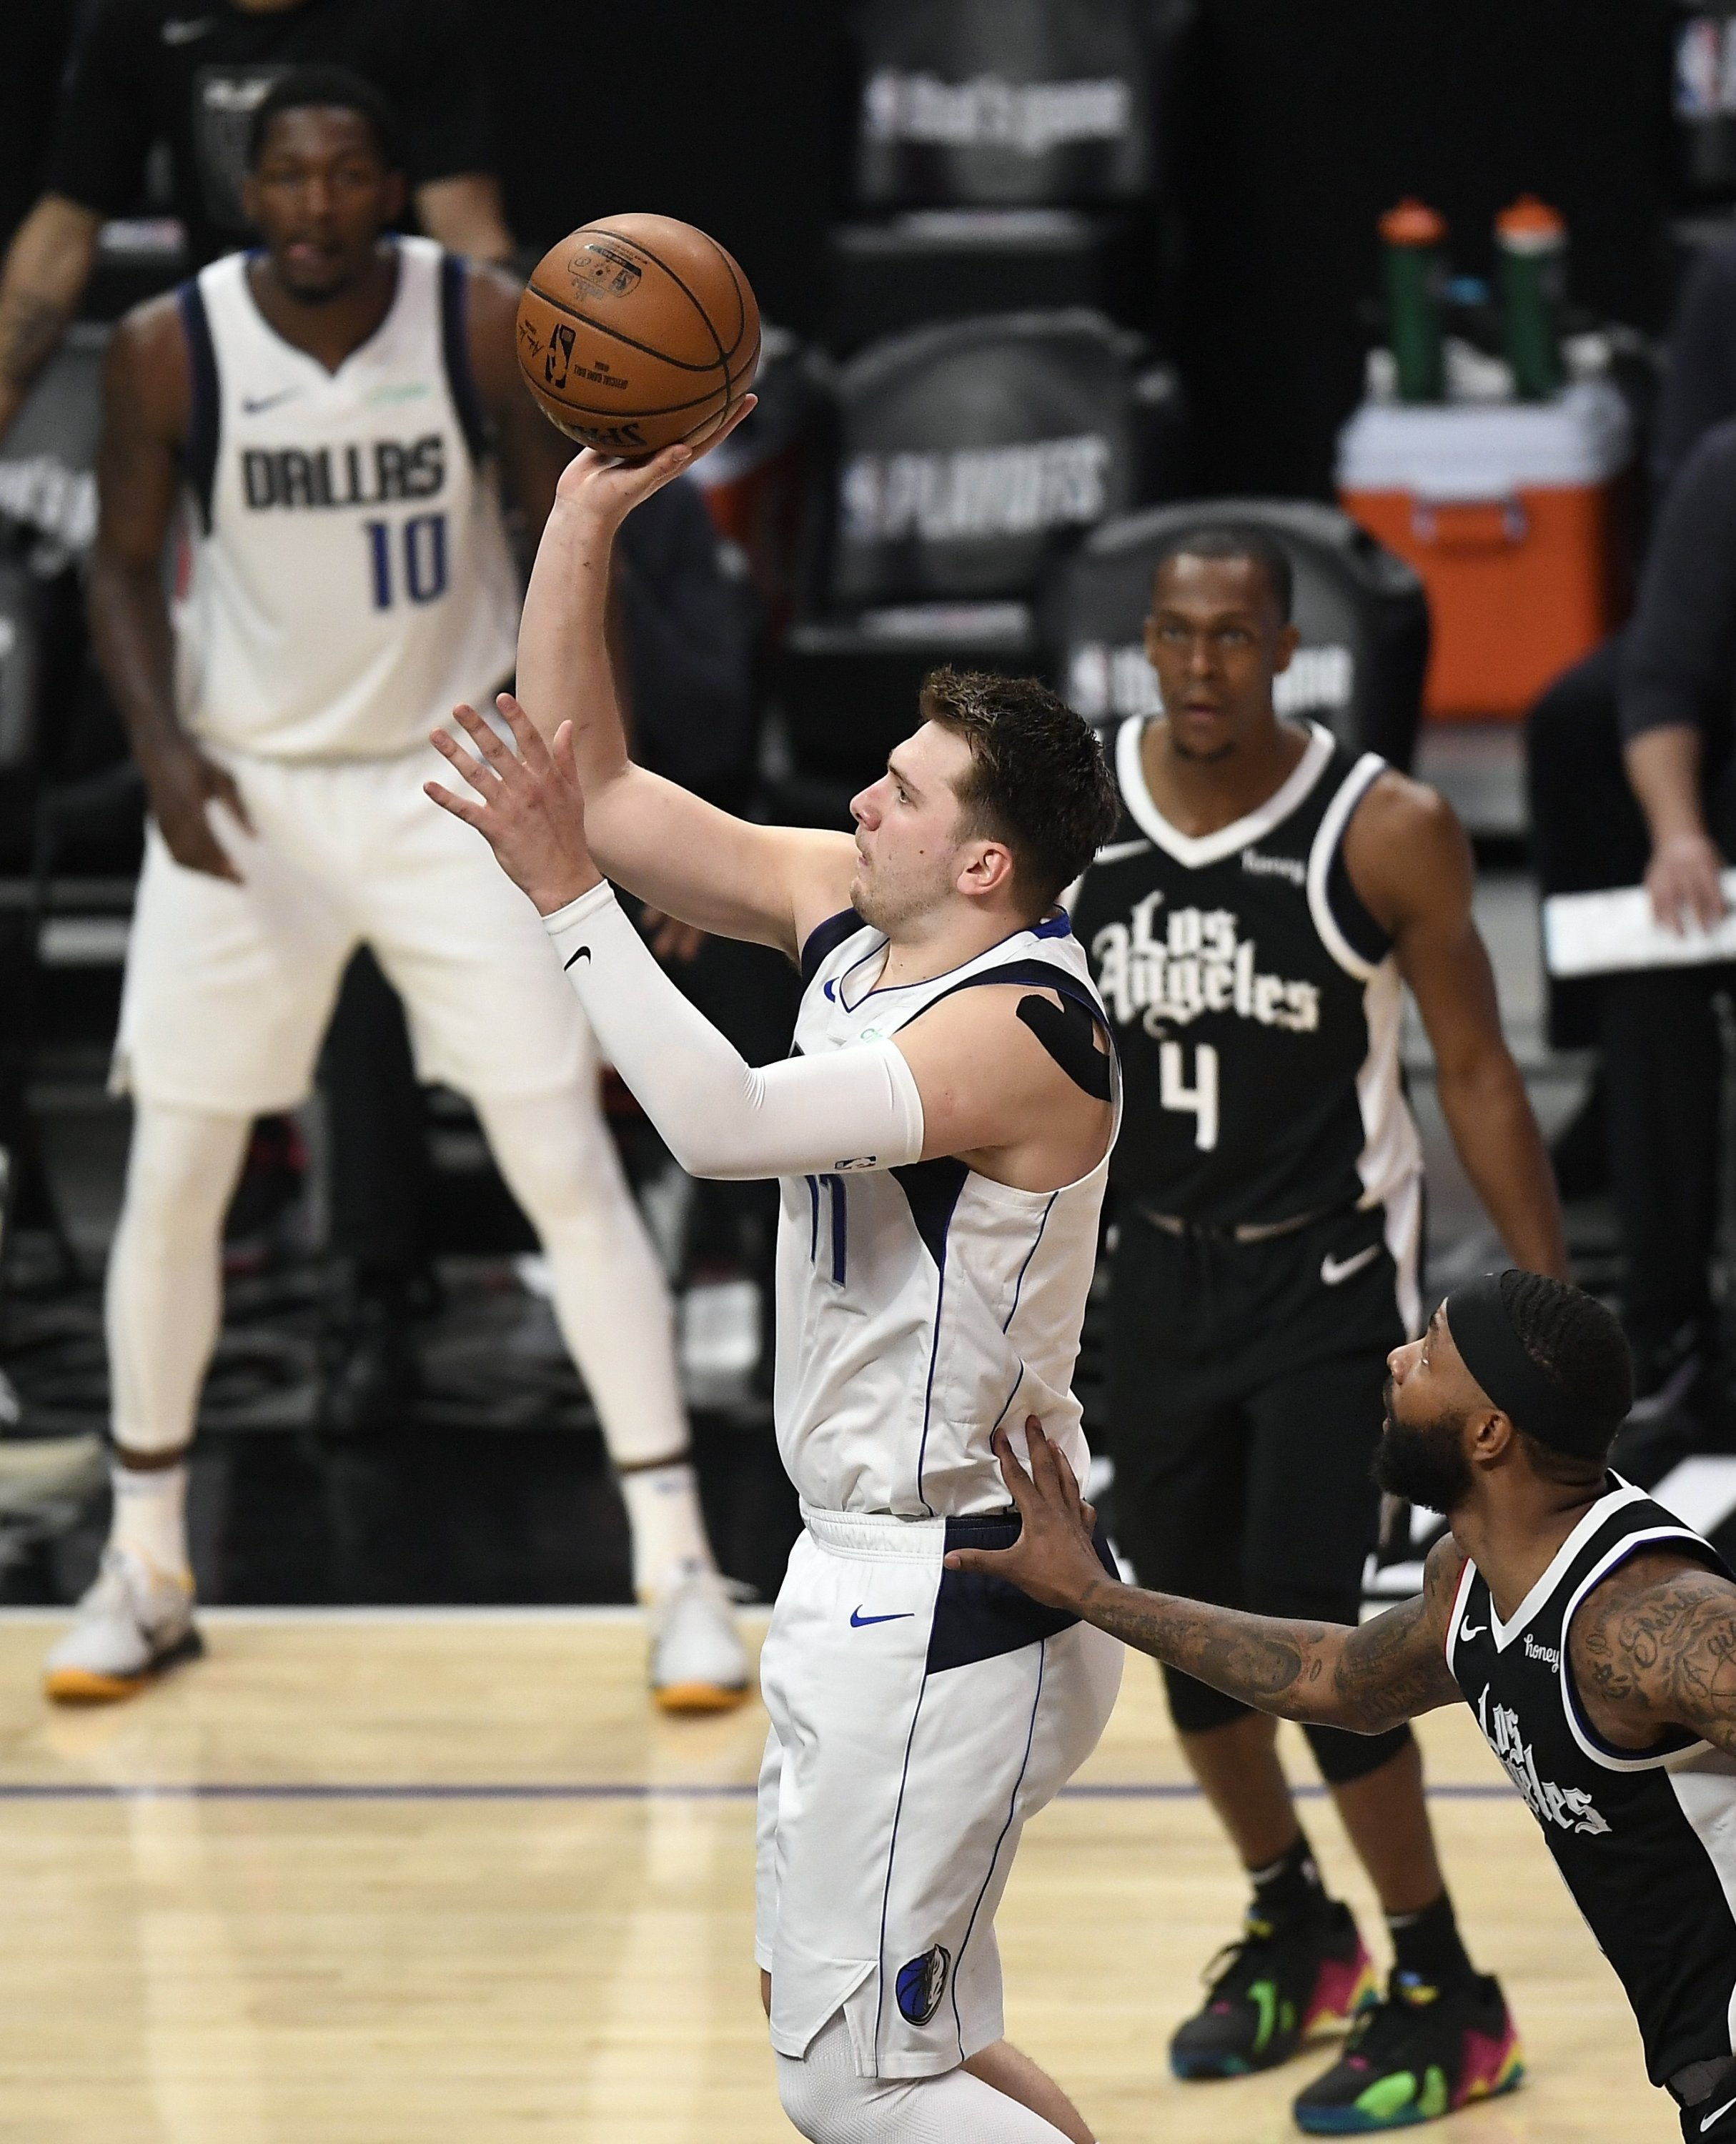 Dallas Mavericks' Luka Doncic (L) scores against the Los Angeles Clippers during game five of a Western Conference first-round NBA Playoffs at Staples Center, Los Angeles, California, U.S., June 2, 2021.